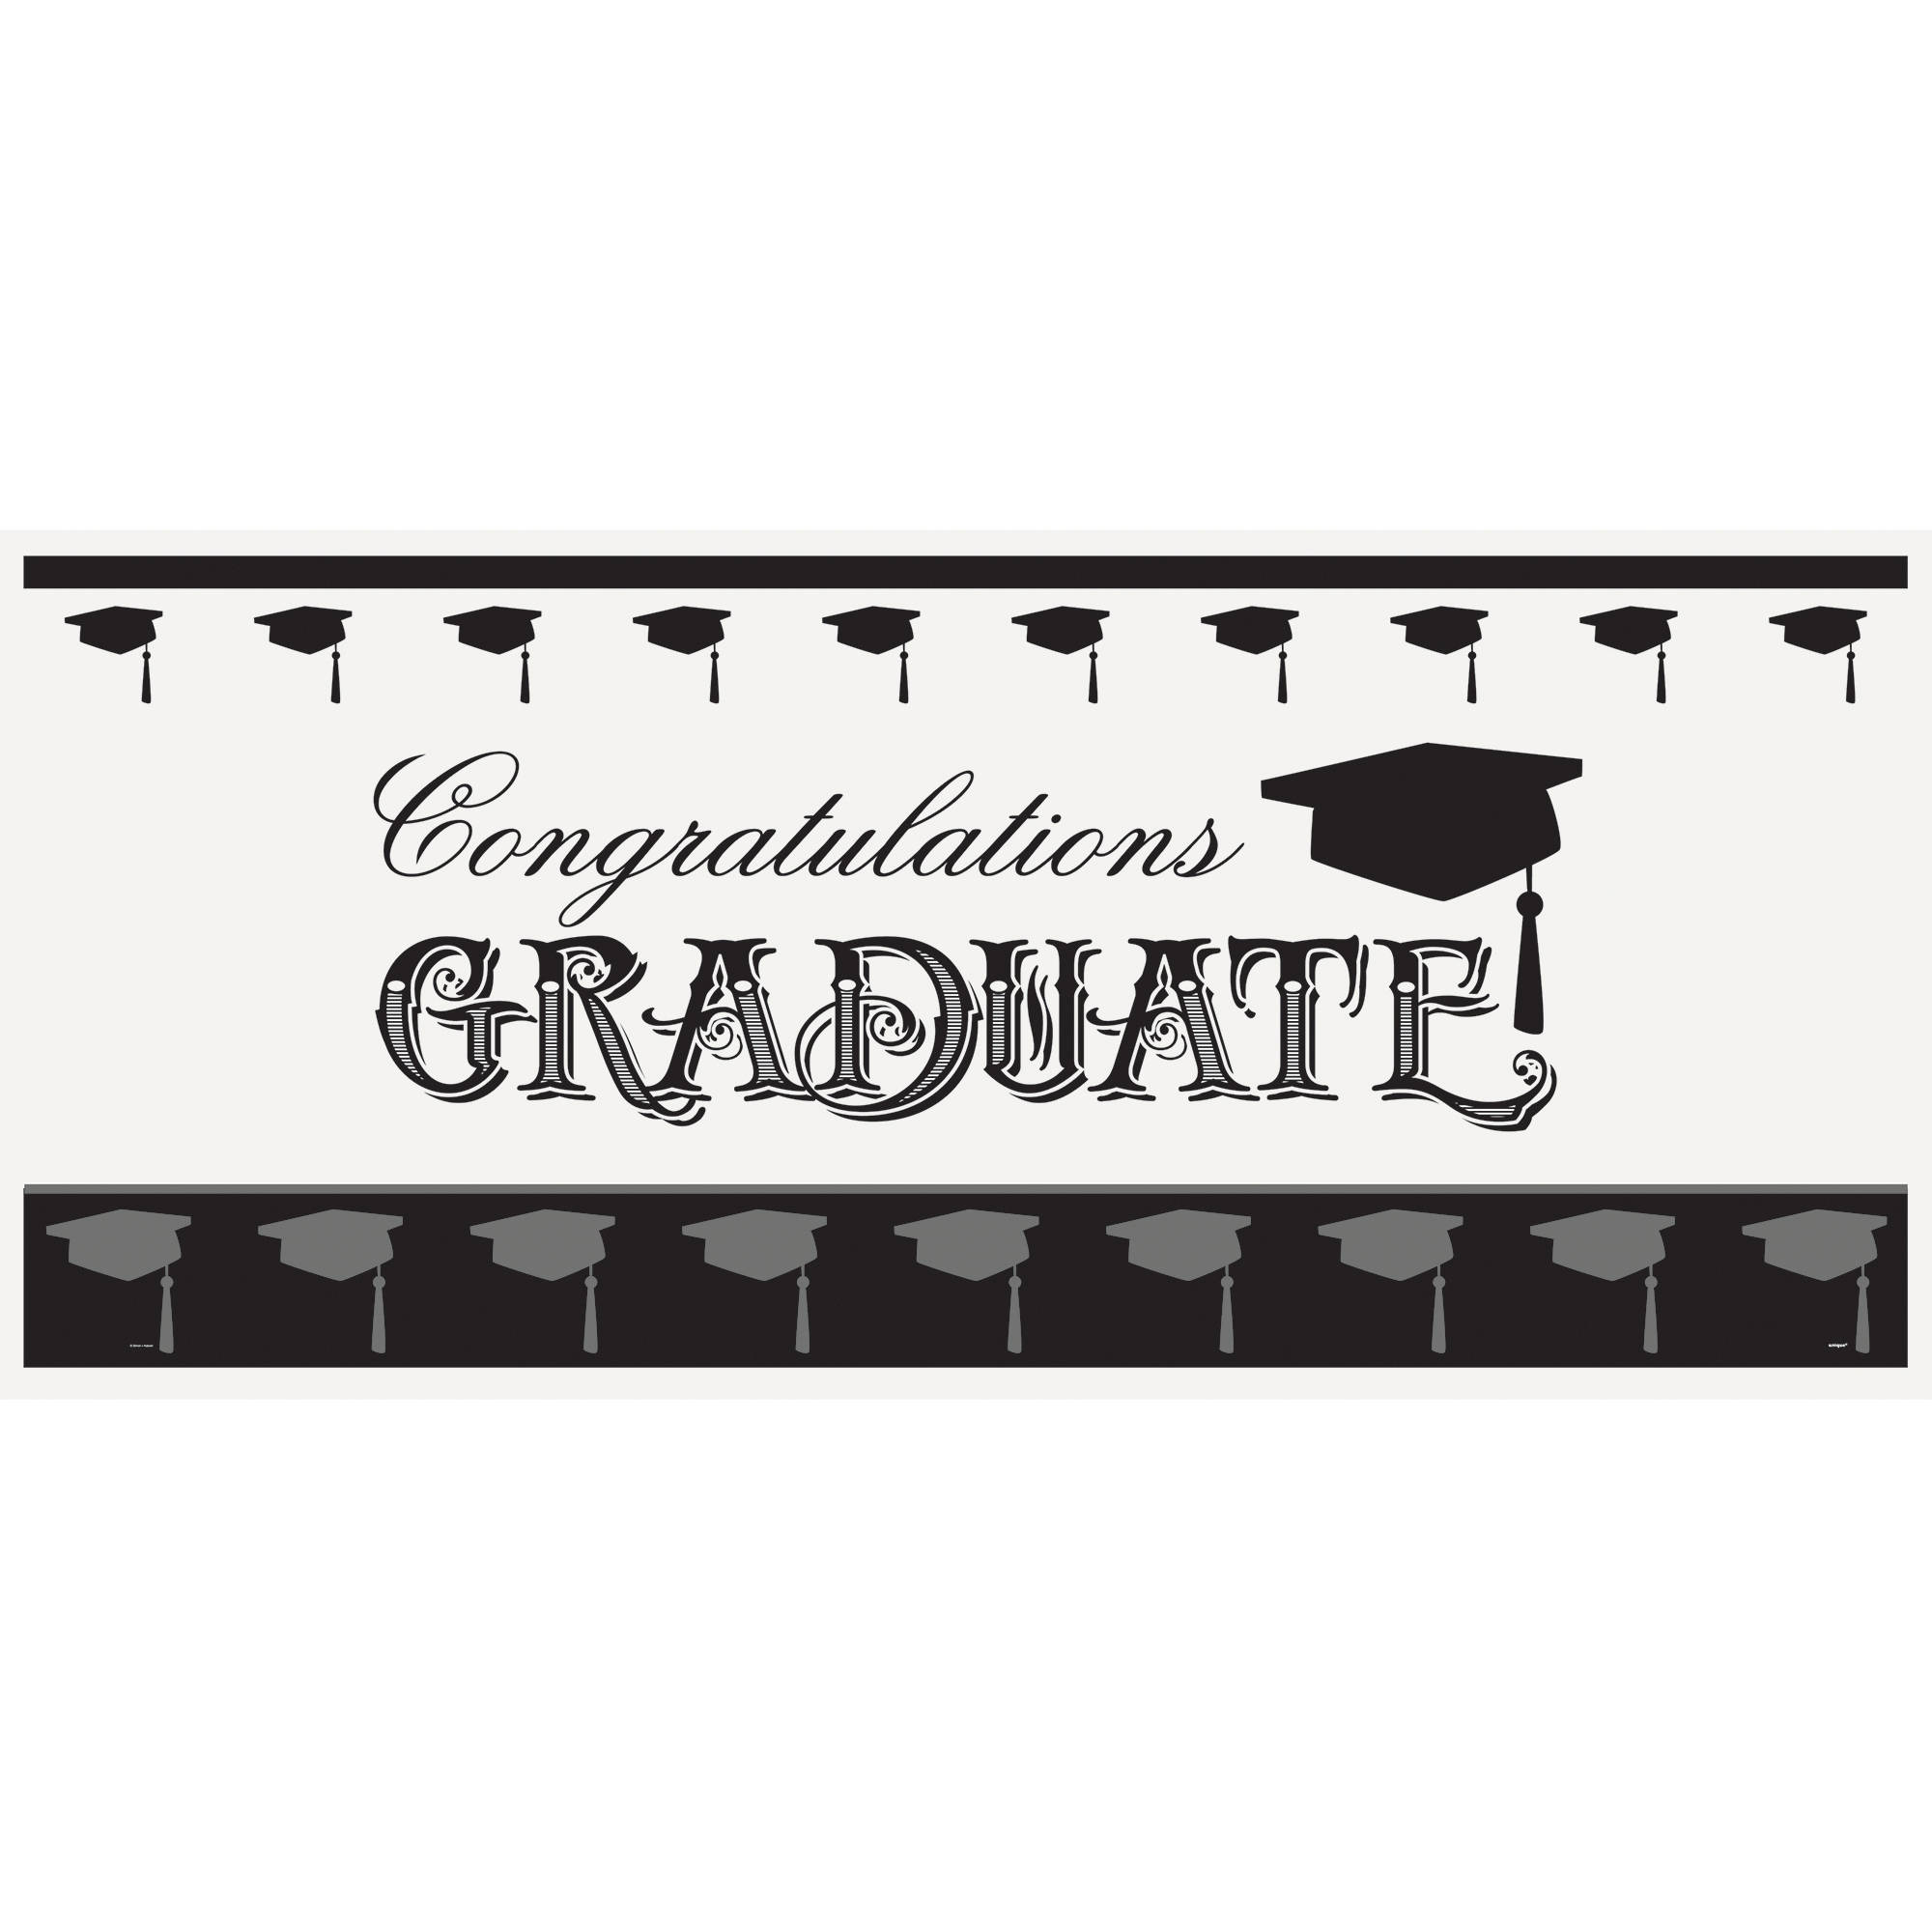 Plastic Classic Graduation Wall Banner, 5 x 2.25 ft, 1ct